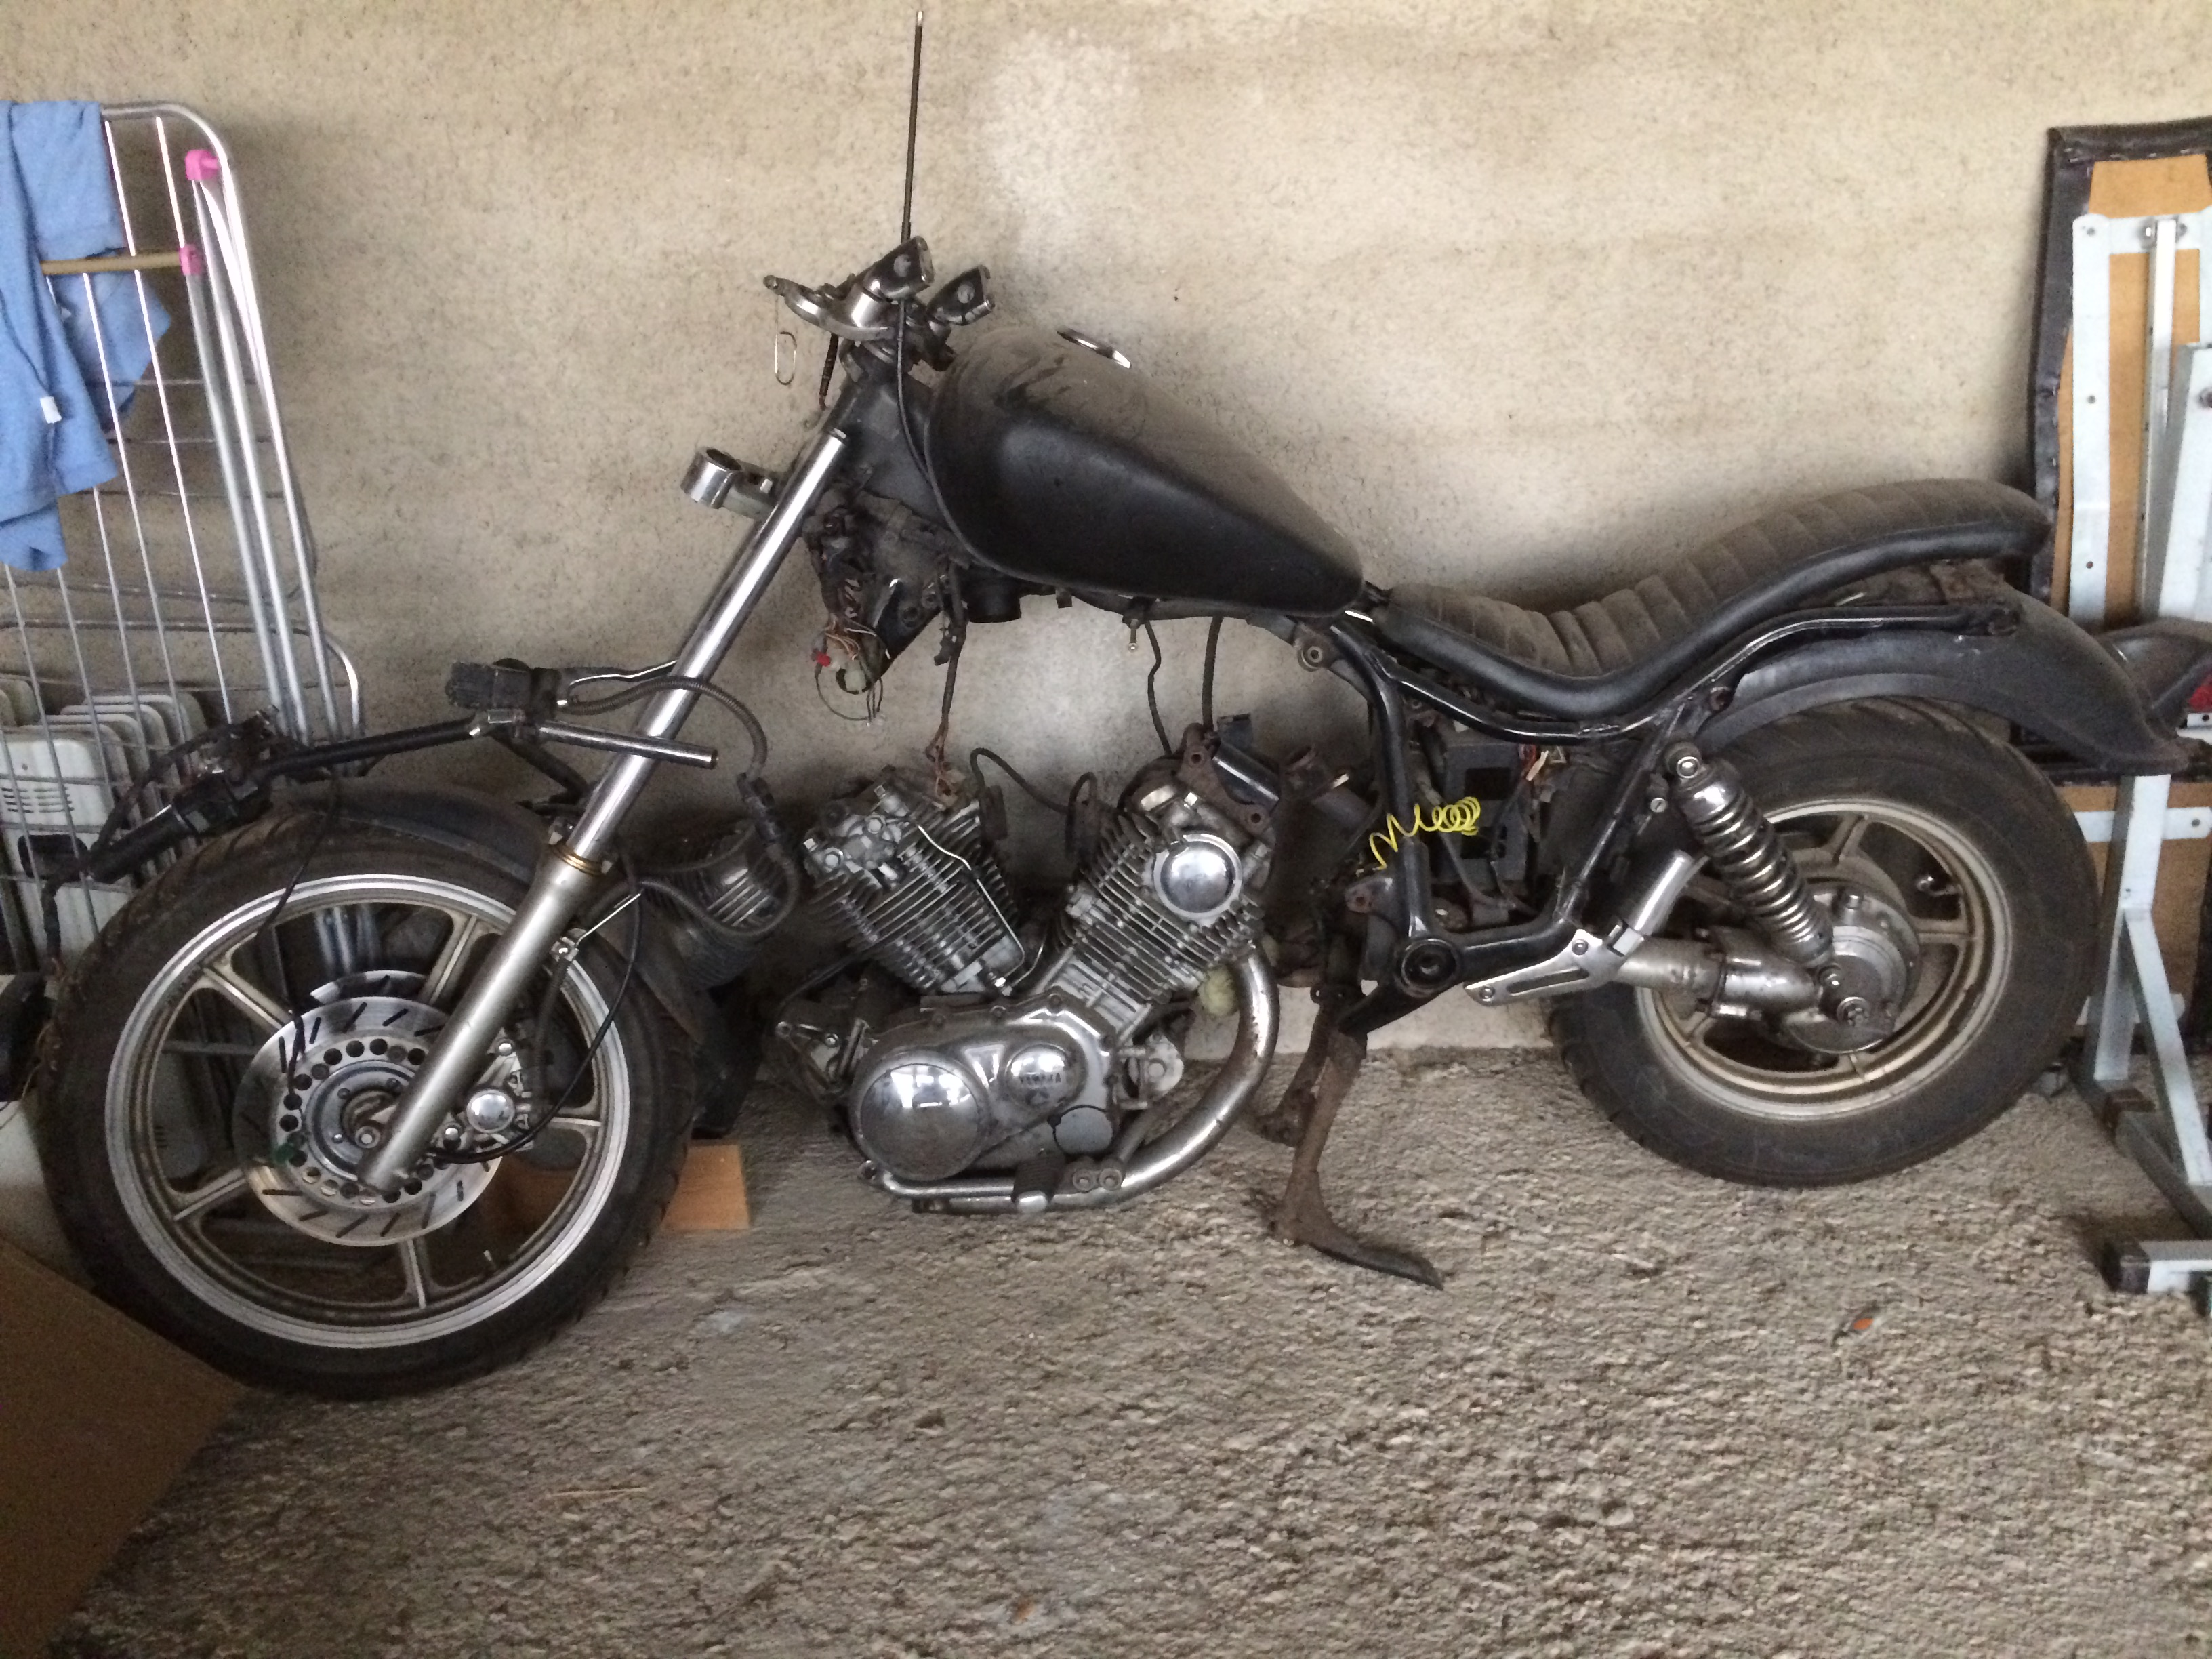 1991 yamaha virago 750 manual